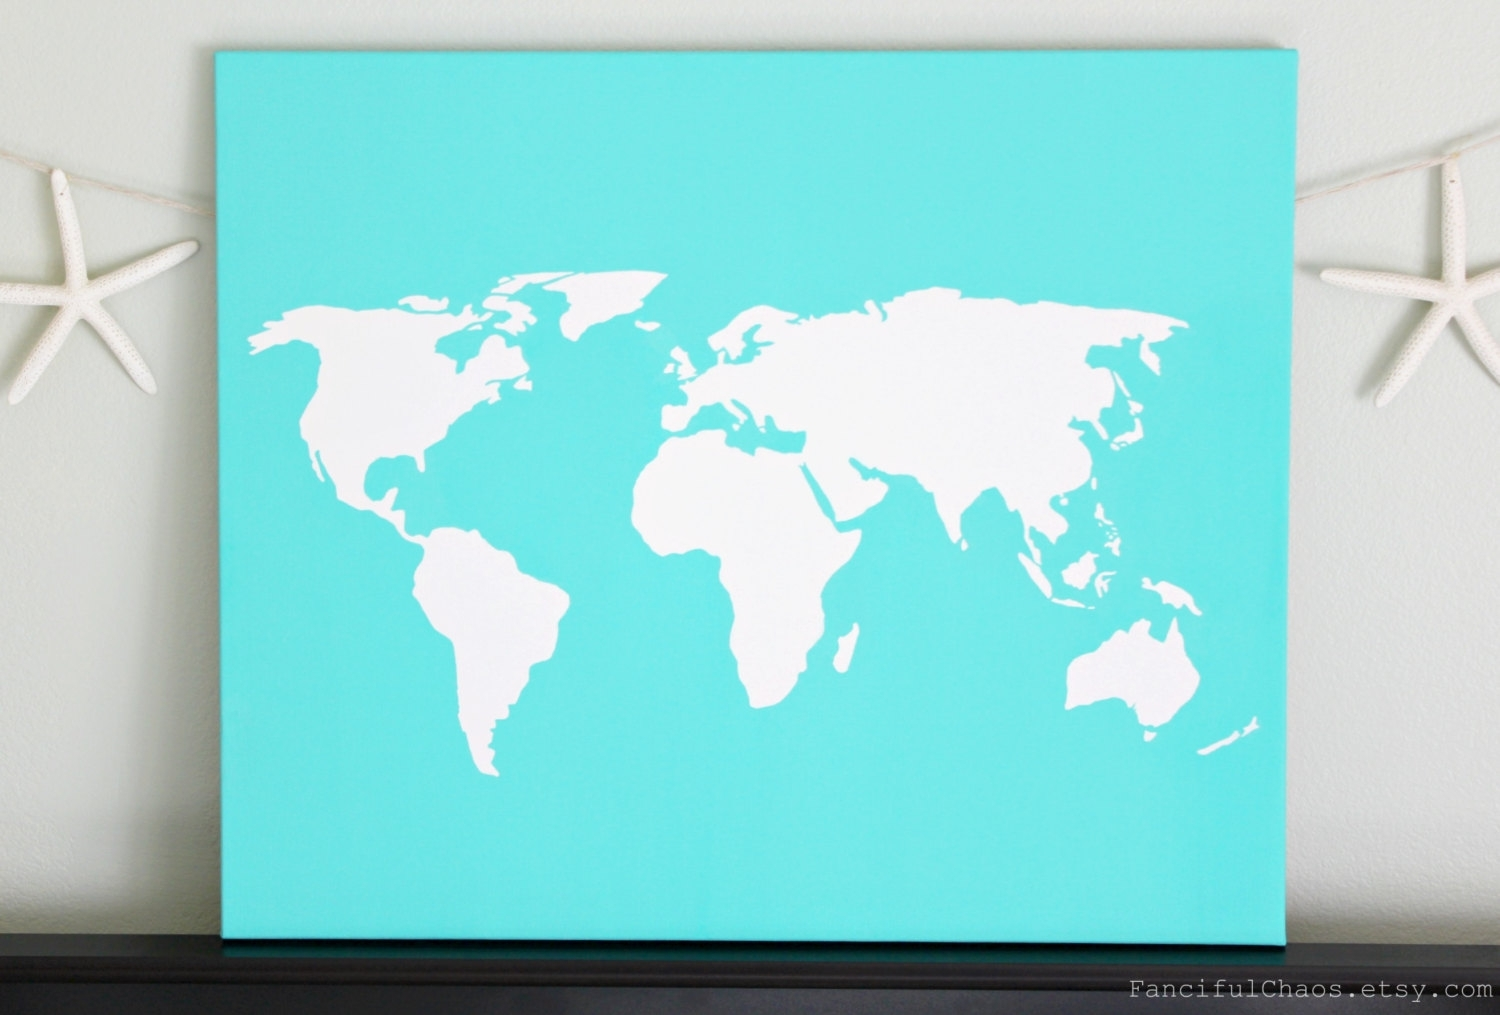 Il Fullxfull 540289865 6G0P Jpg Version 0 For Diy World Map Wall With Most Recent Diy World Map Wall Art (View 14 of 20)